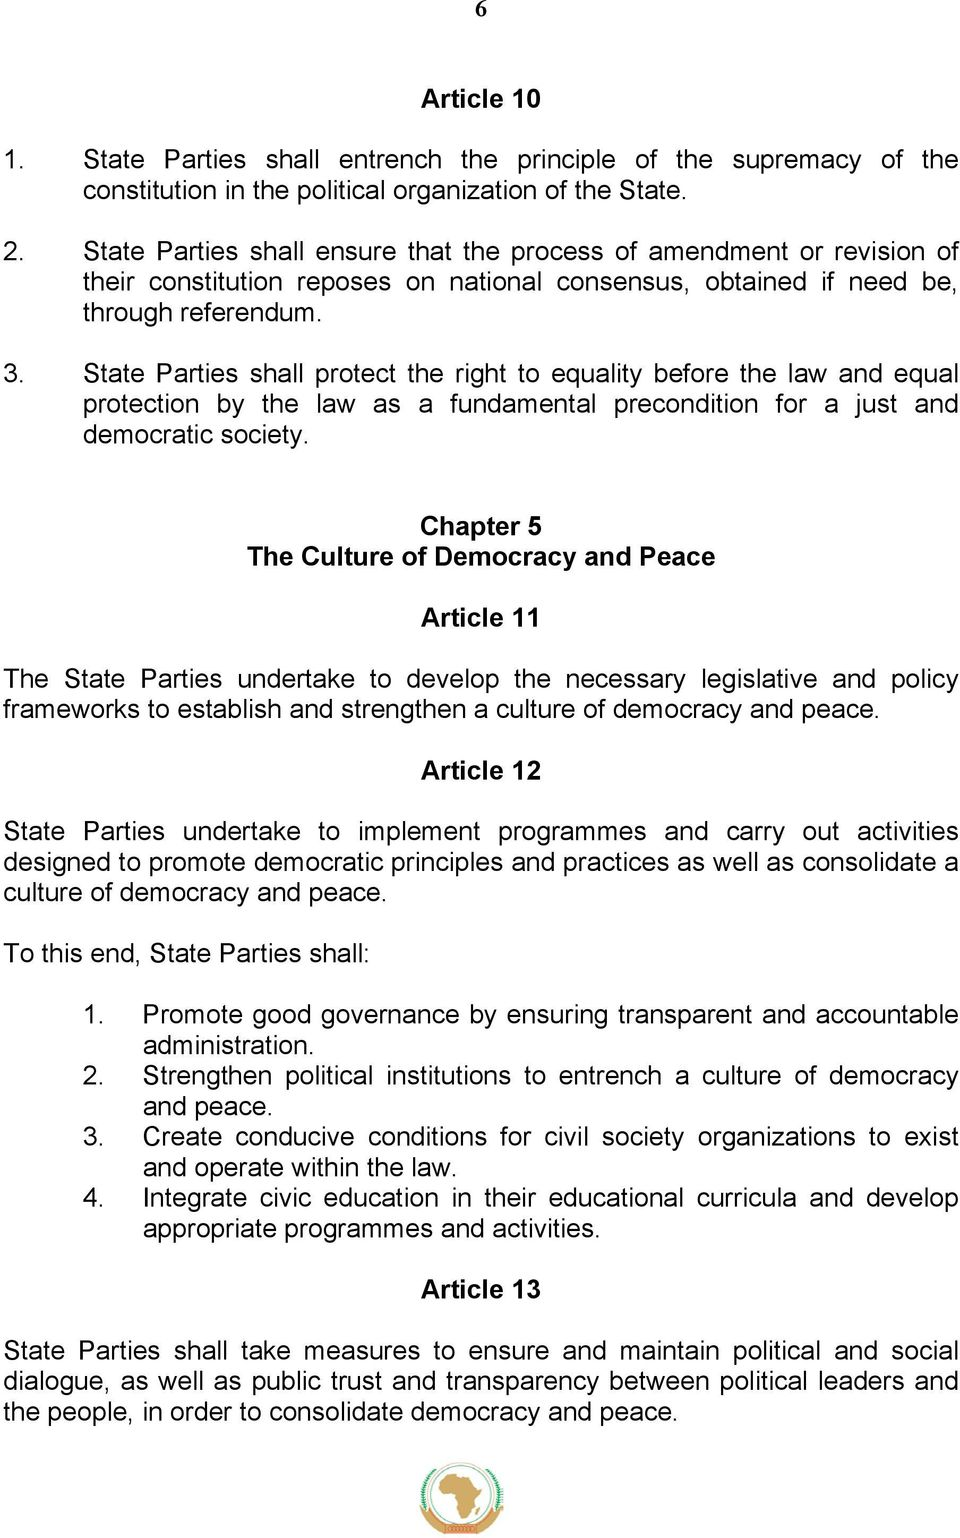 State Parties shall protect the right to equality before the law and equal protection by the law as a fundamental precondition for a just and democratic society.